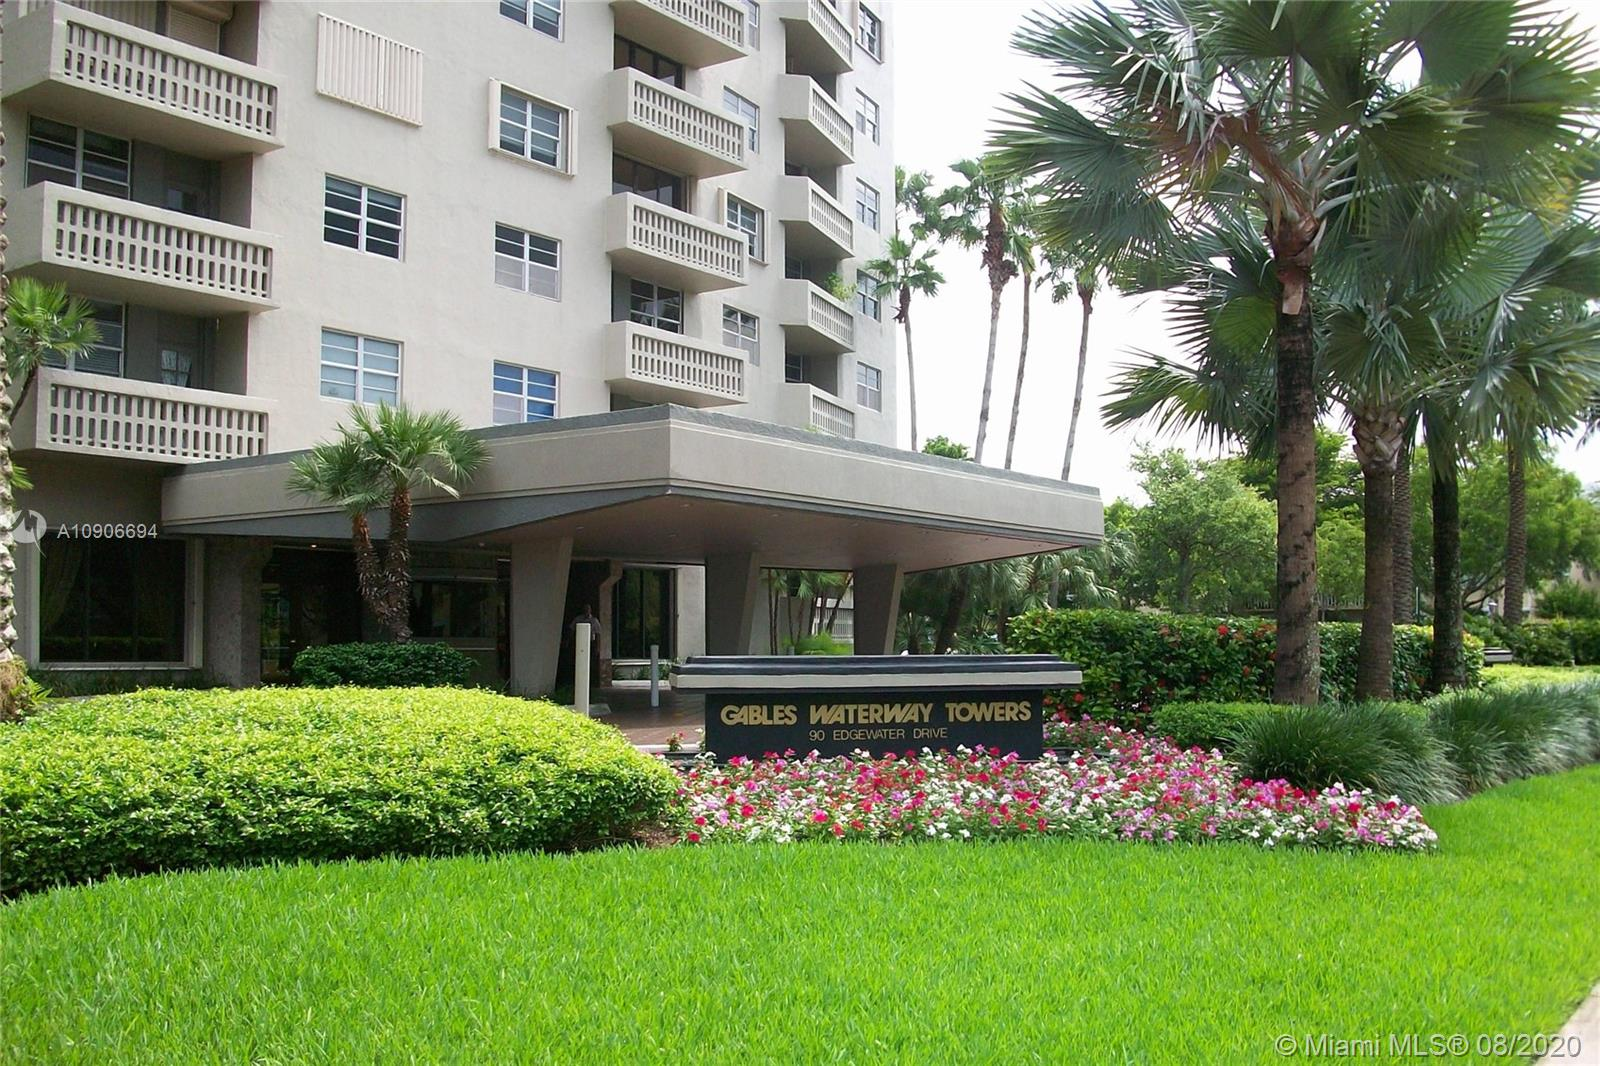 90 Edgewater Dr #715, Coral Gables FL 33133